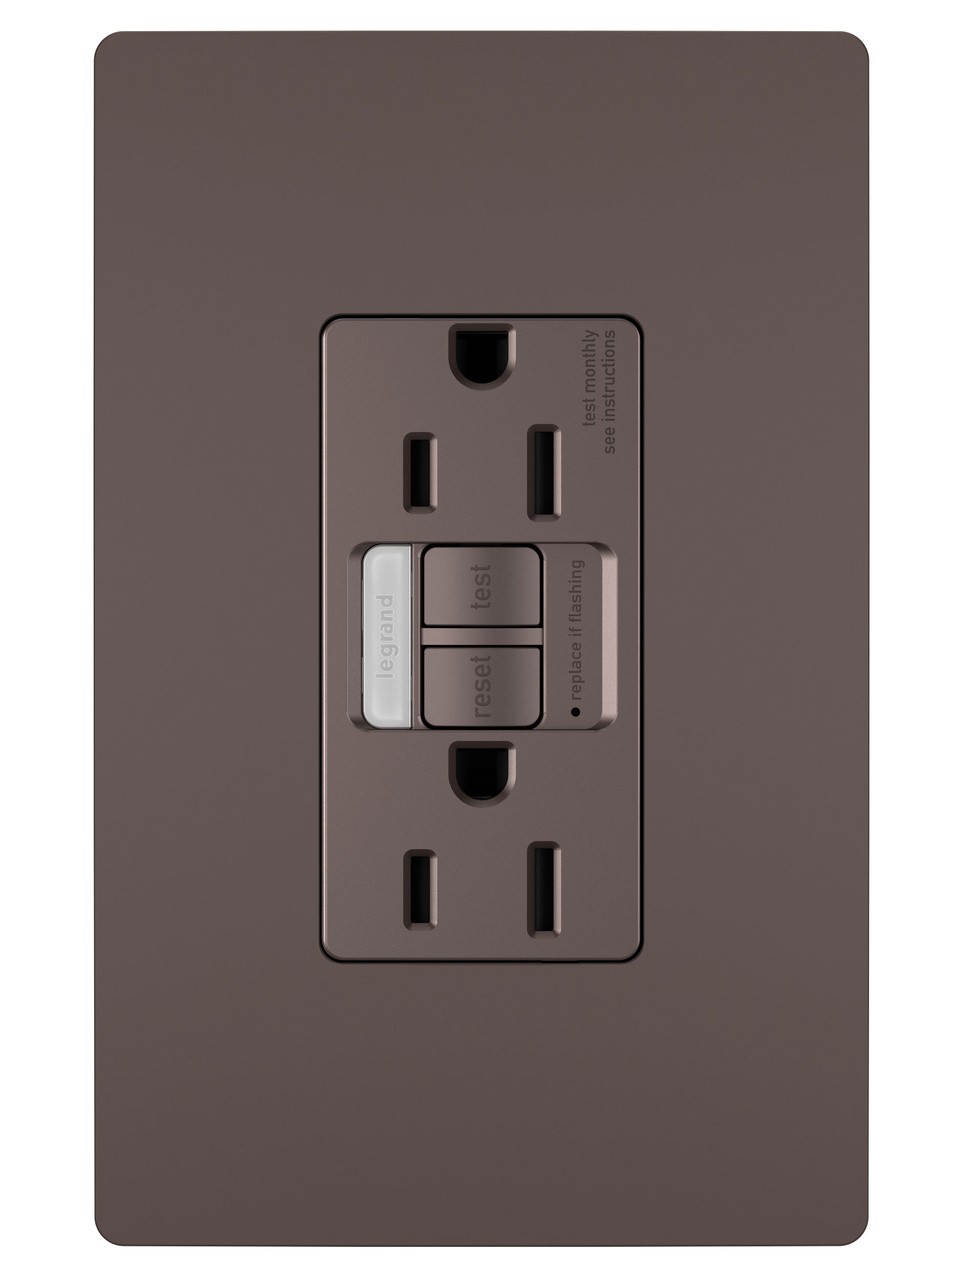 Combination Tamper-Resistant 15A Self-Test Night Light/GFCI, Dark Bronze